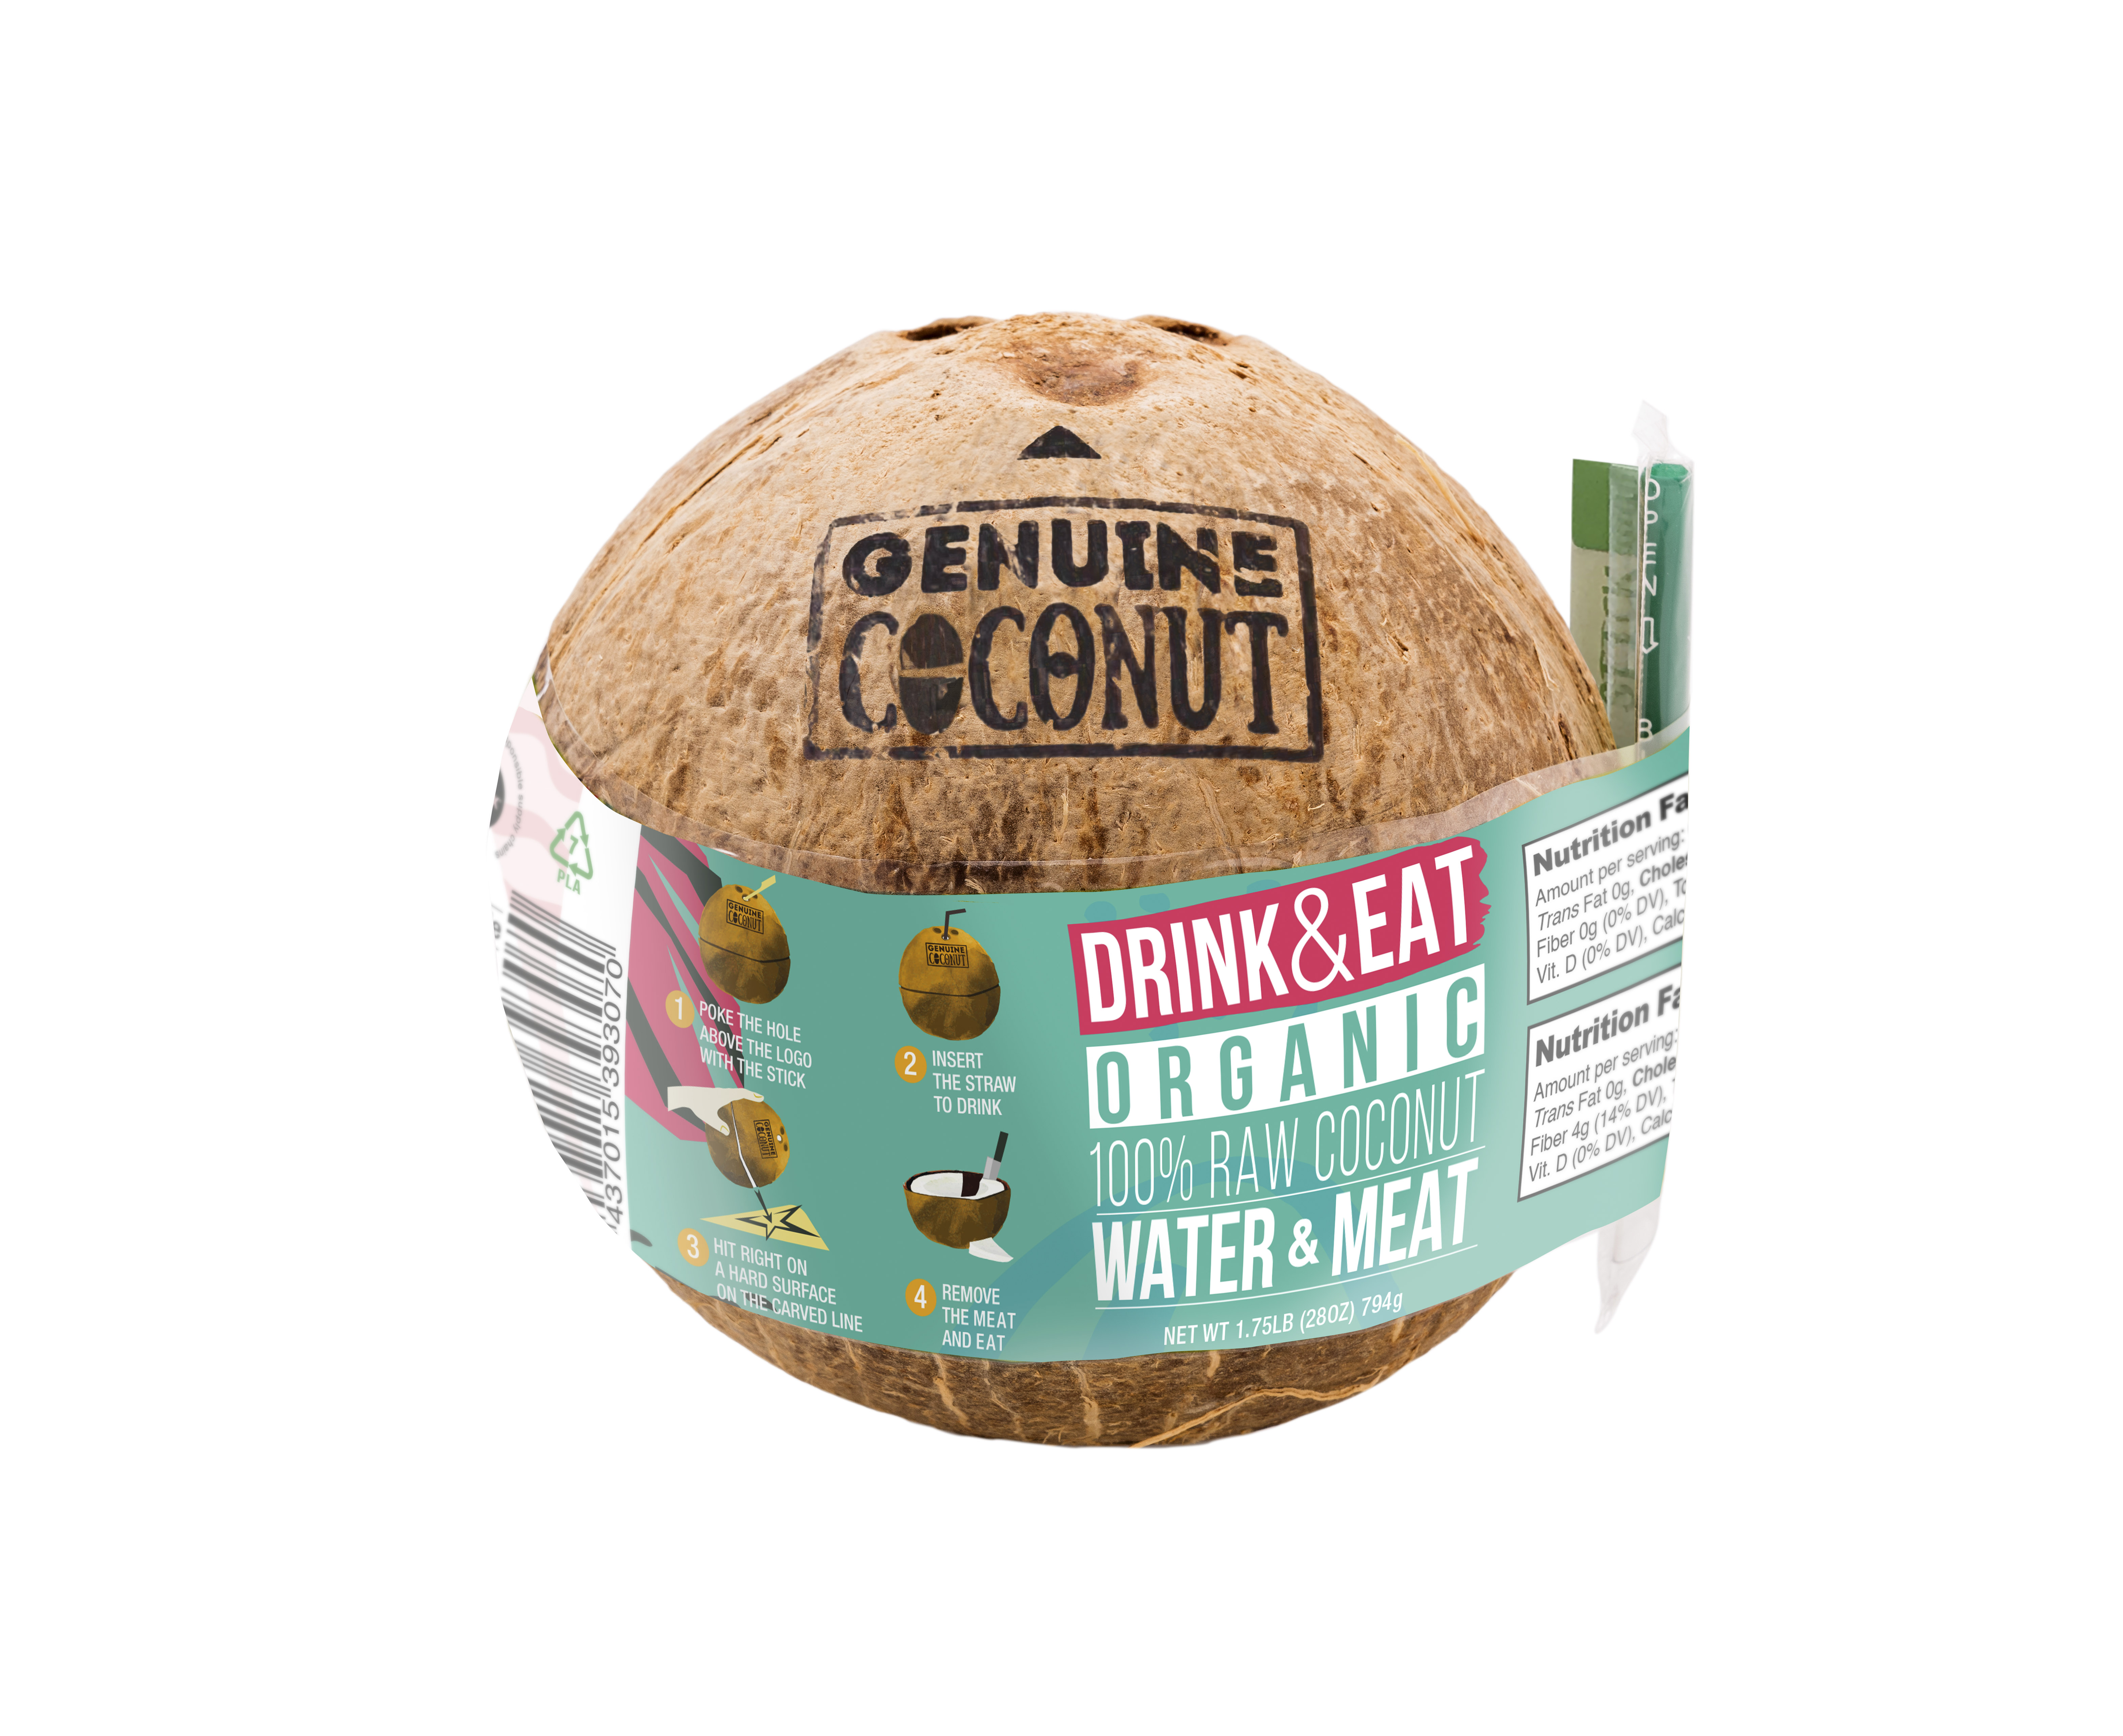 Photo of Drink & Eat - Genuine Coconut (uploaded by company)